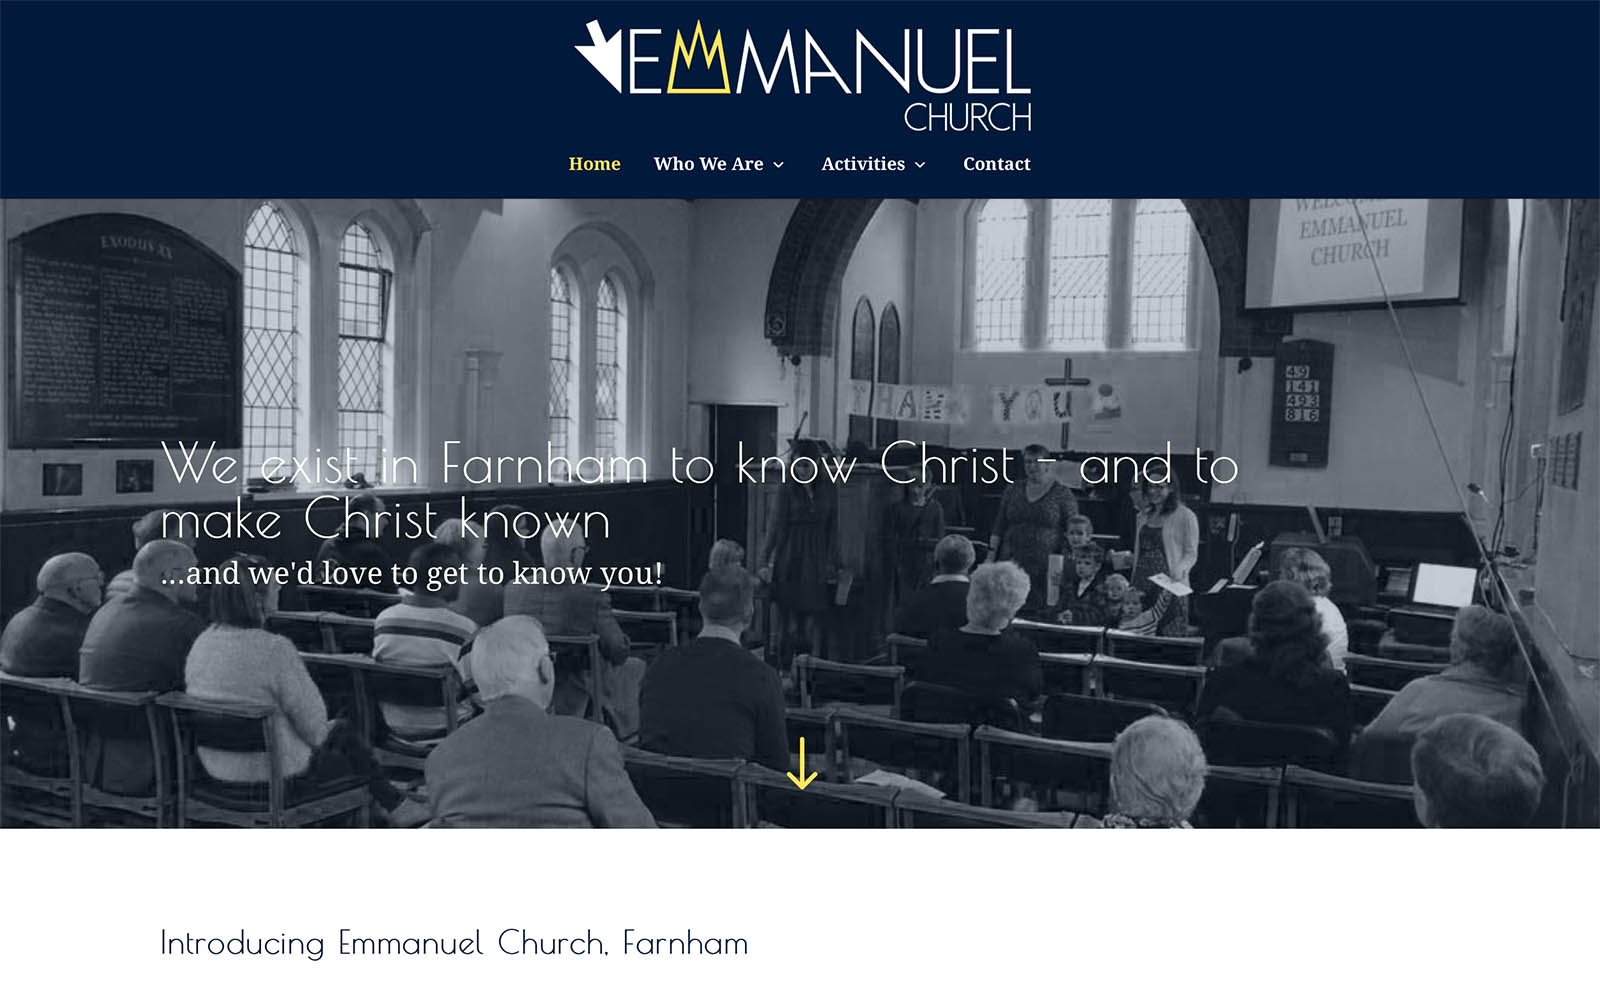 Emmanuel Church Website Design Screenshot